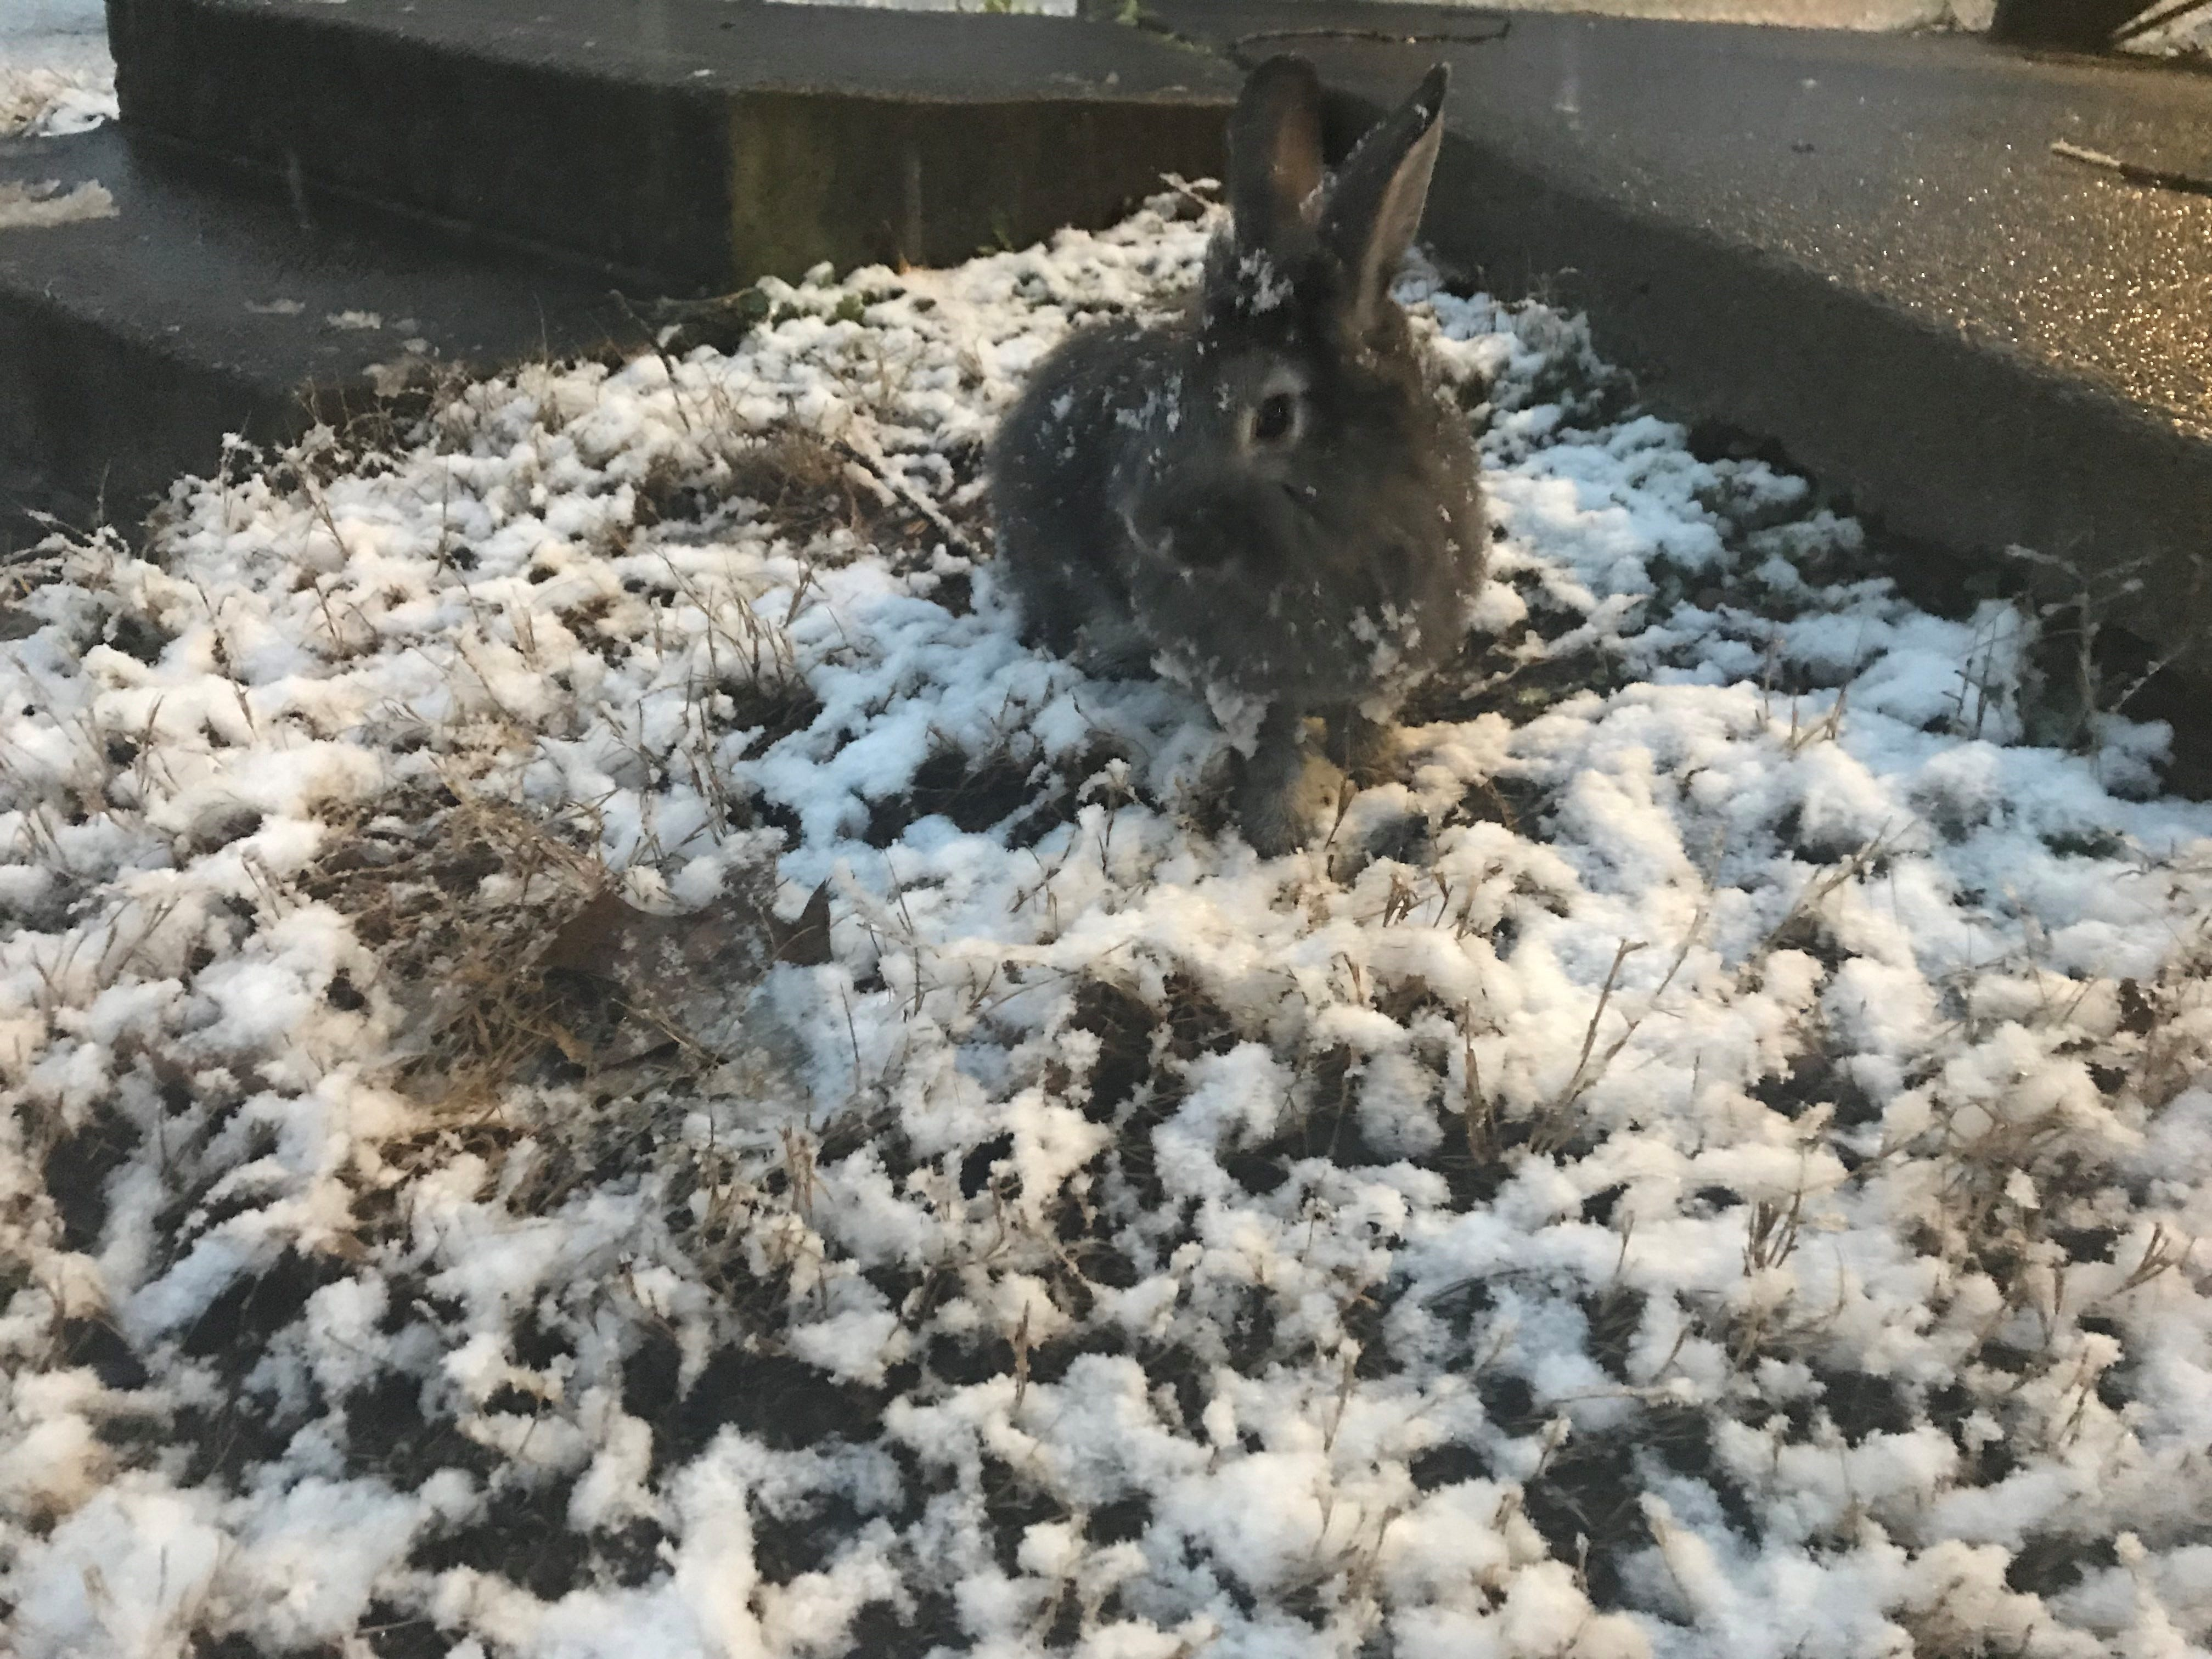 Pet rabbit Mary Hoppins enjoys the snow on Tuesday, January 29, 2019.